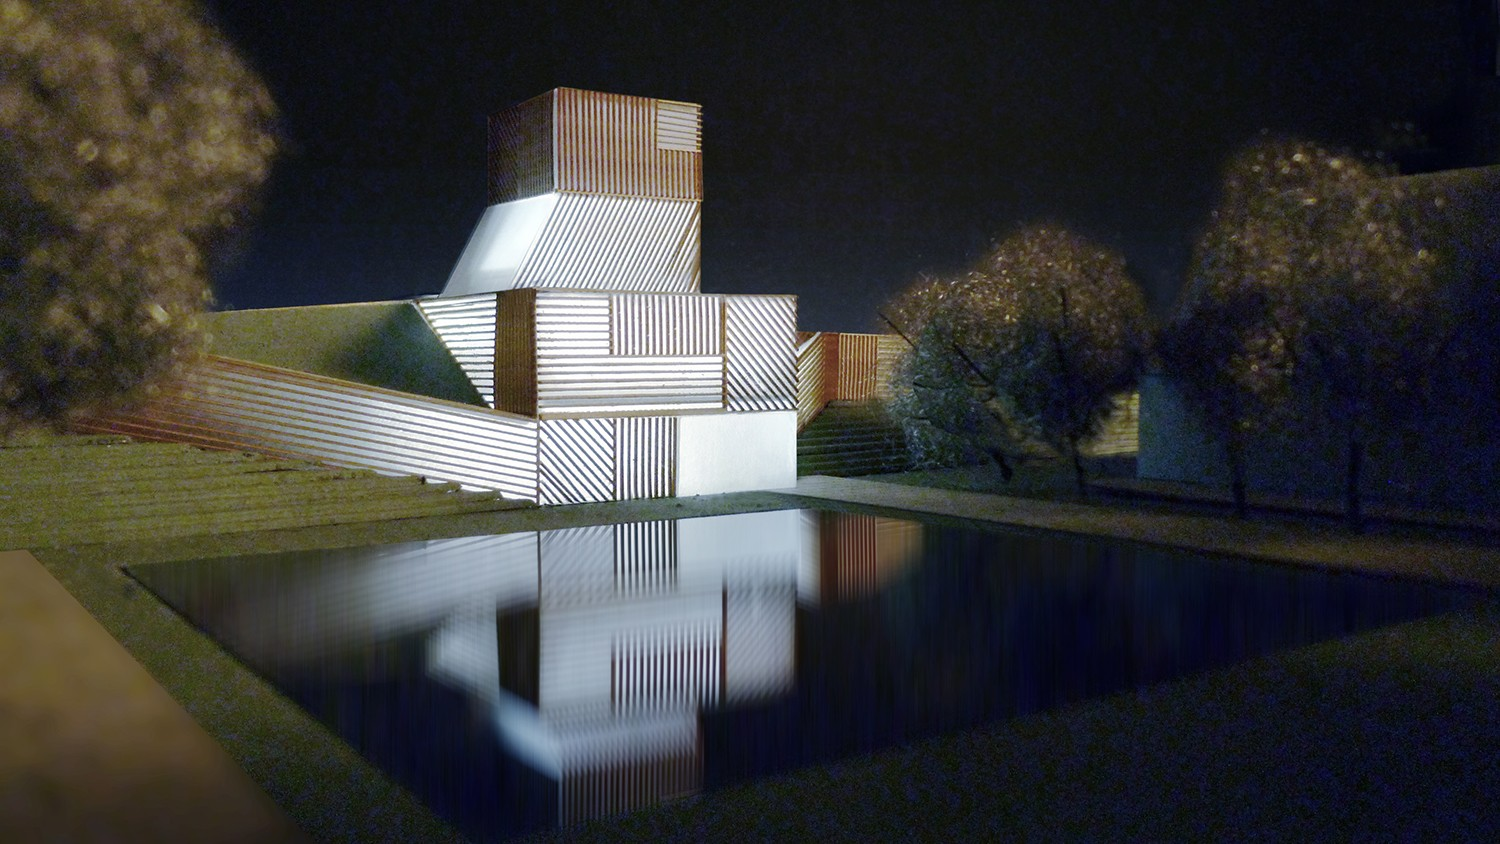 https://s3.us-east-2.amazonaws.com/steven-holl/uploads/projects/project-images/StevenHollArchitects_Bremerton_P1160663_touchecd_WH.jpg